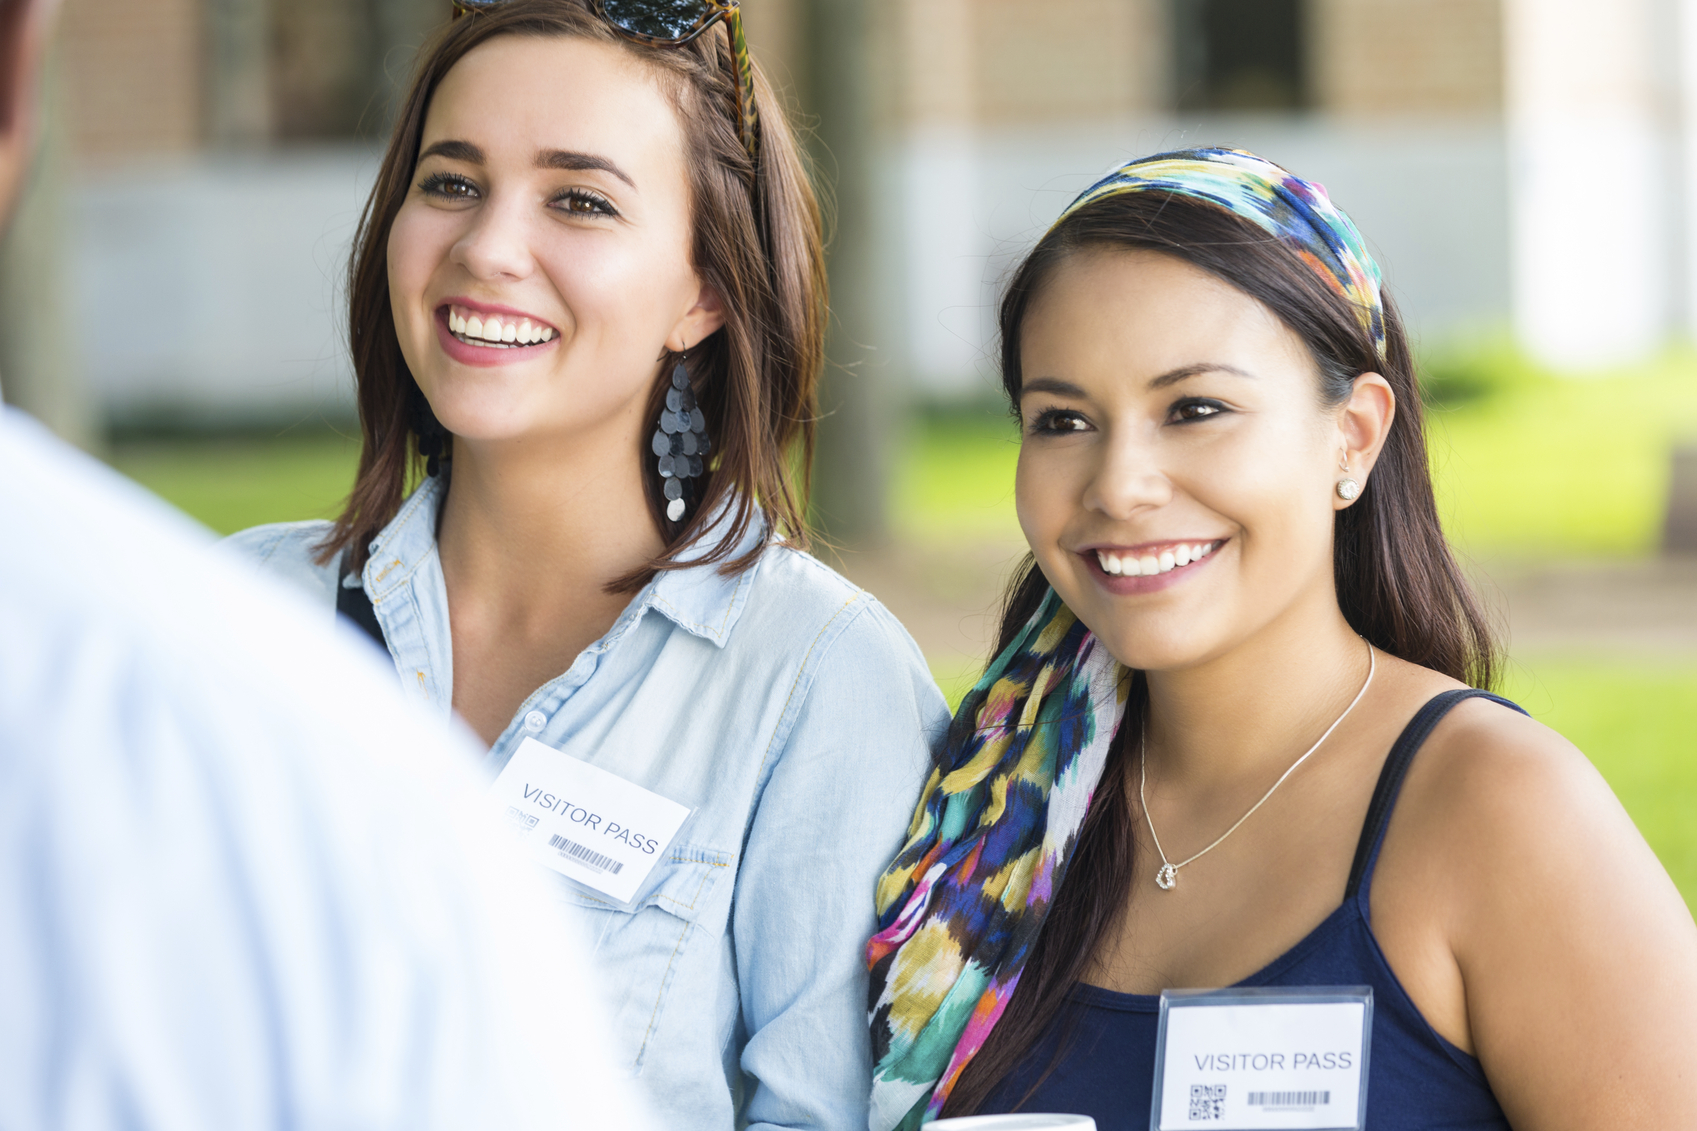 Young women touring beautiful college campus with tour guide